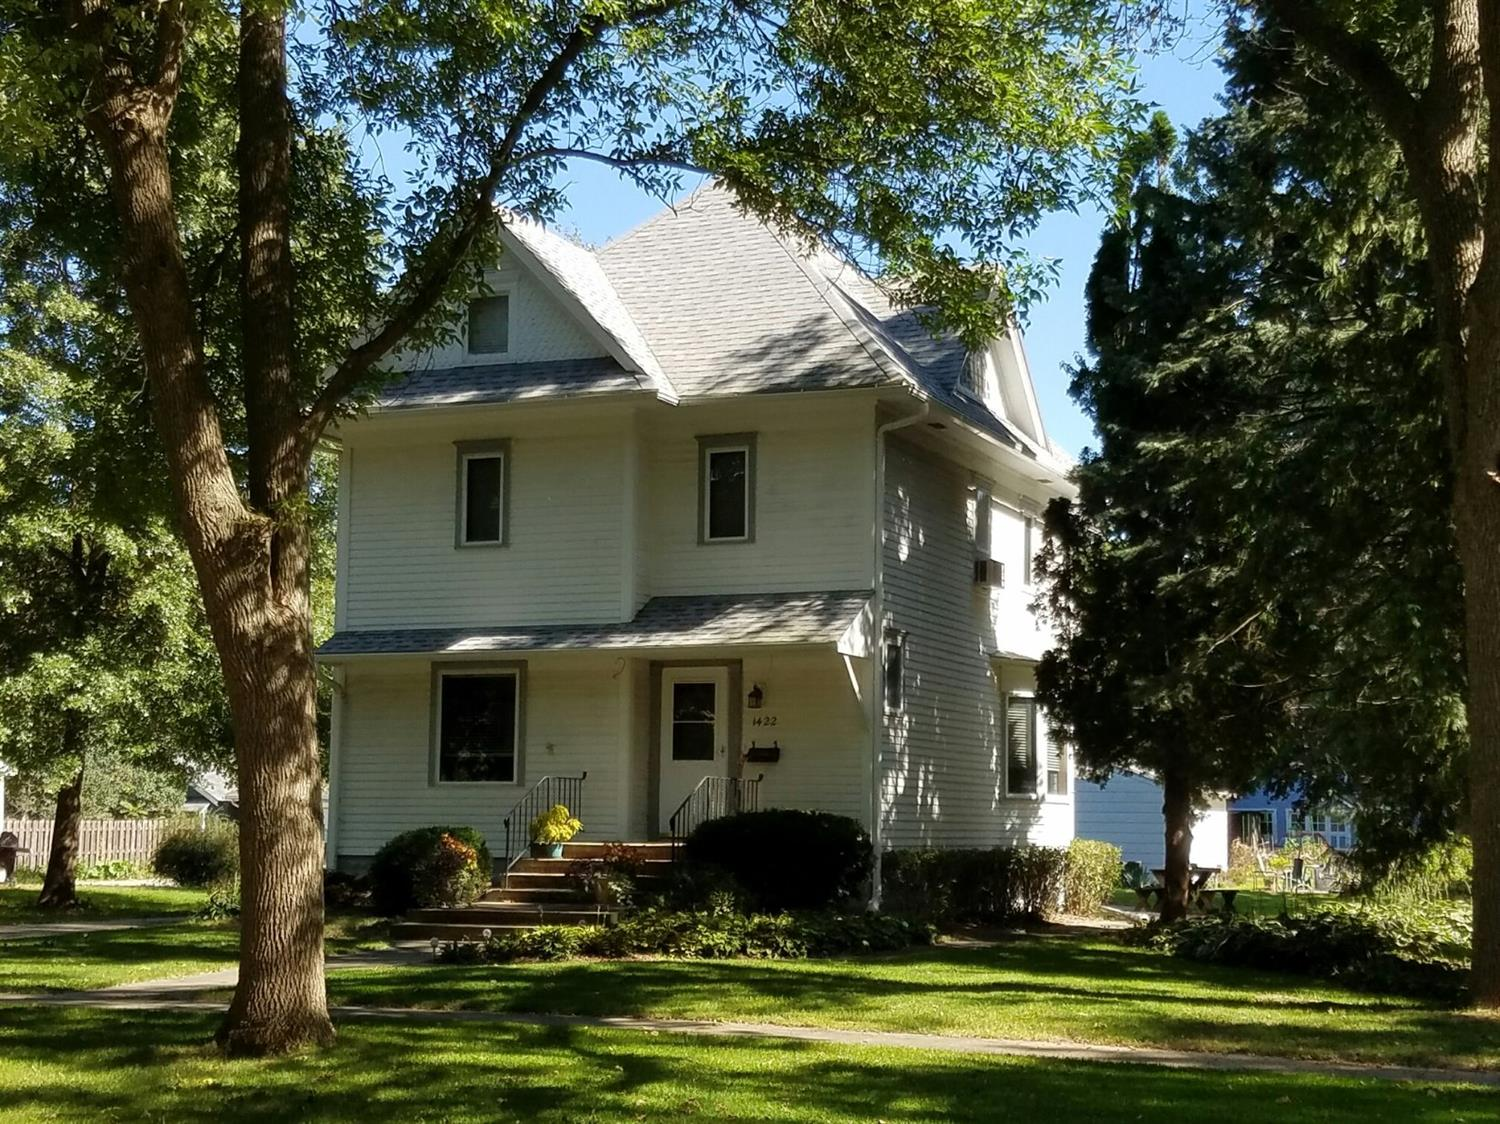 1422 Main St, Grinnell, IA 50112